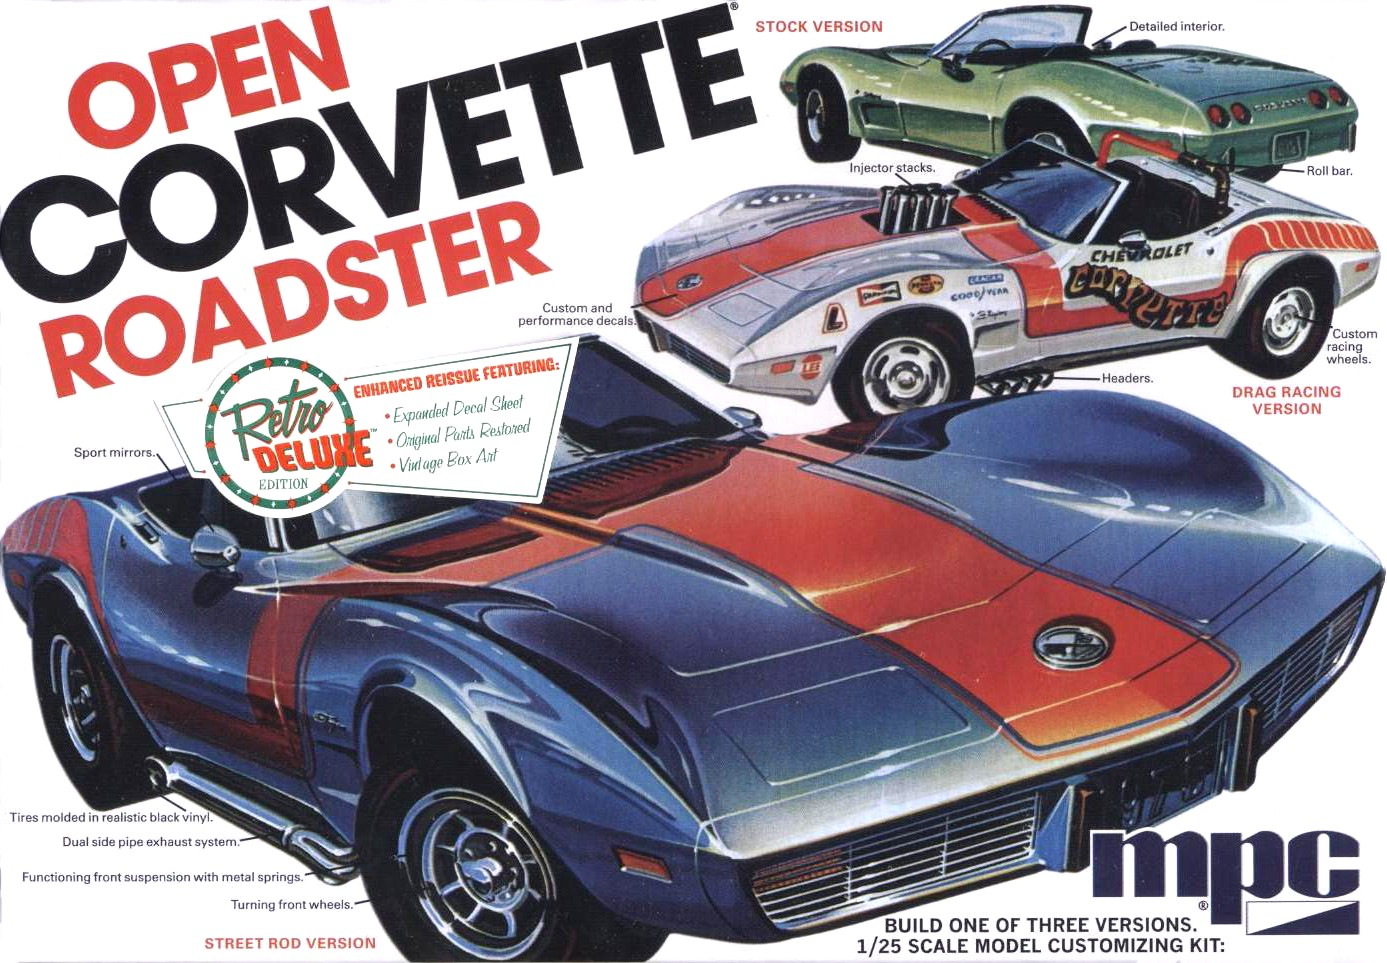 1975 Open Corvette Convertible Roadster (842)